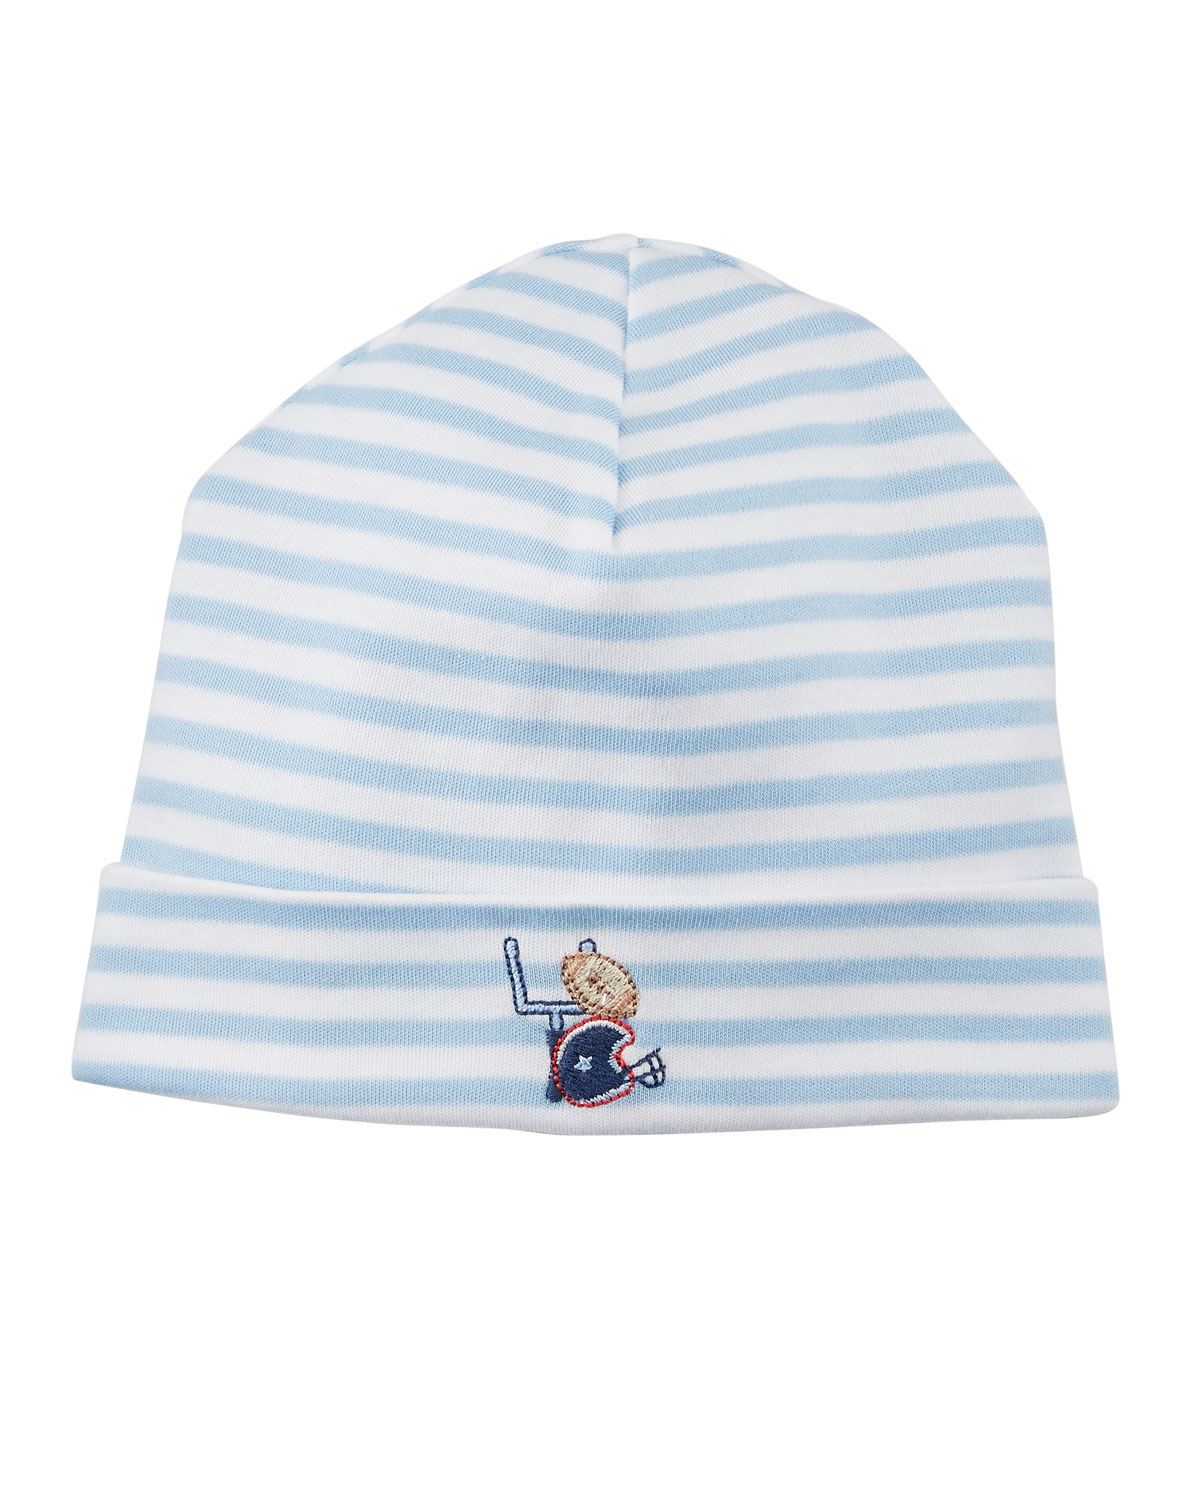 Kissy Kissy Fall Sports Striped Baby Hat  b7947e9a568e